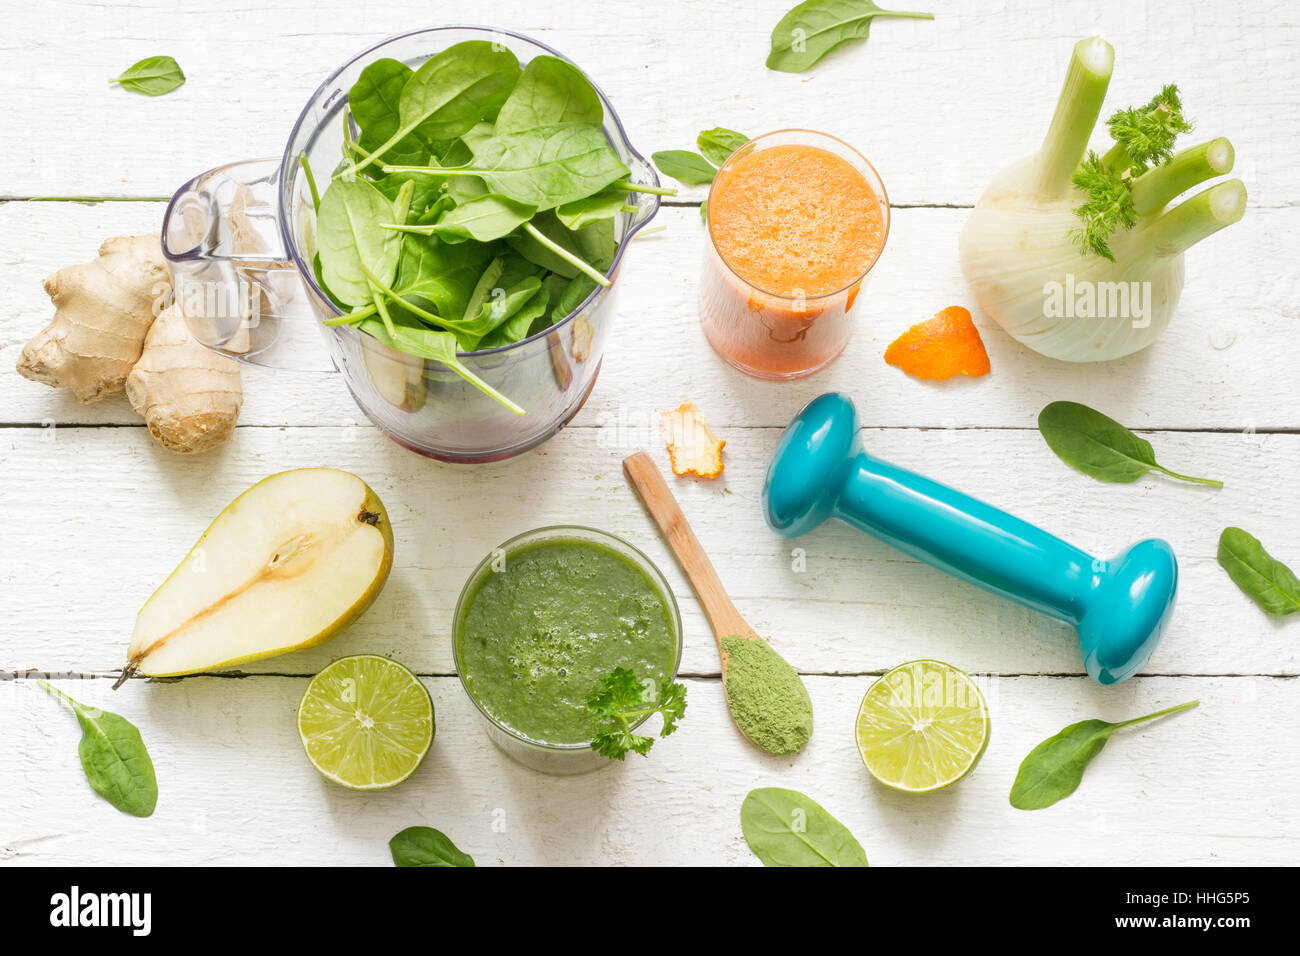 Fruits, légumes, smoothie, blender, abstract concept de vie santé diète Photo Stock